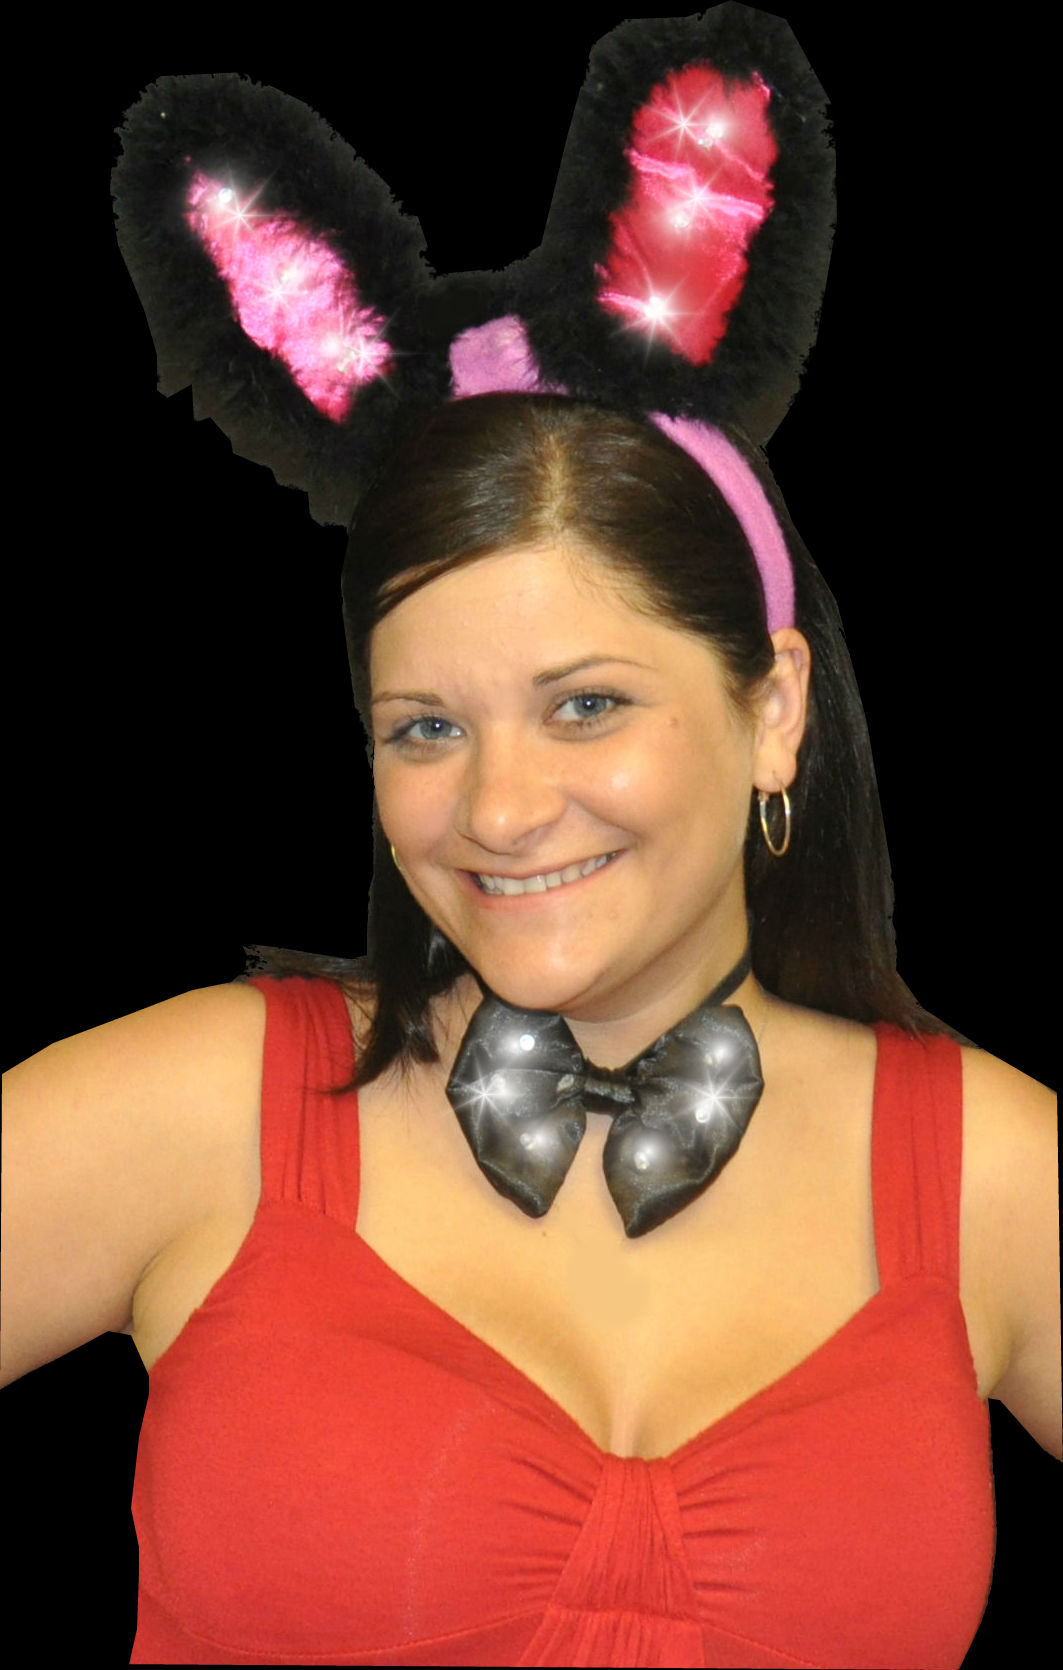 LED BUNNY EARS WITH BOW TIE (1 PIECE)